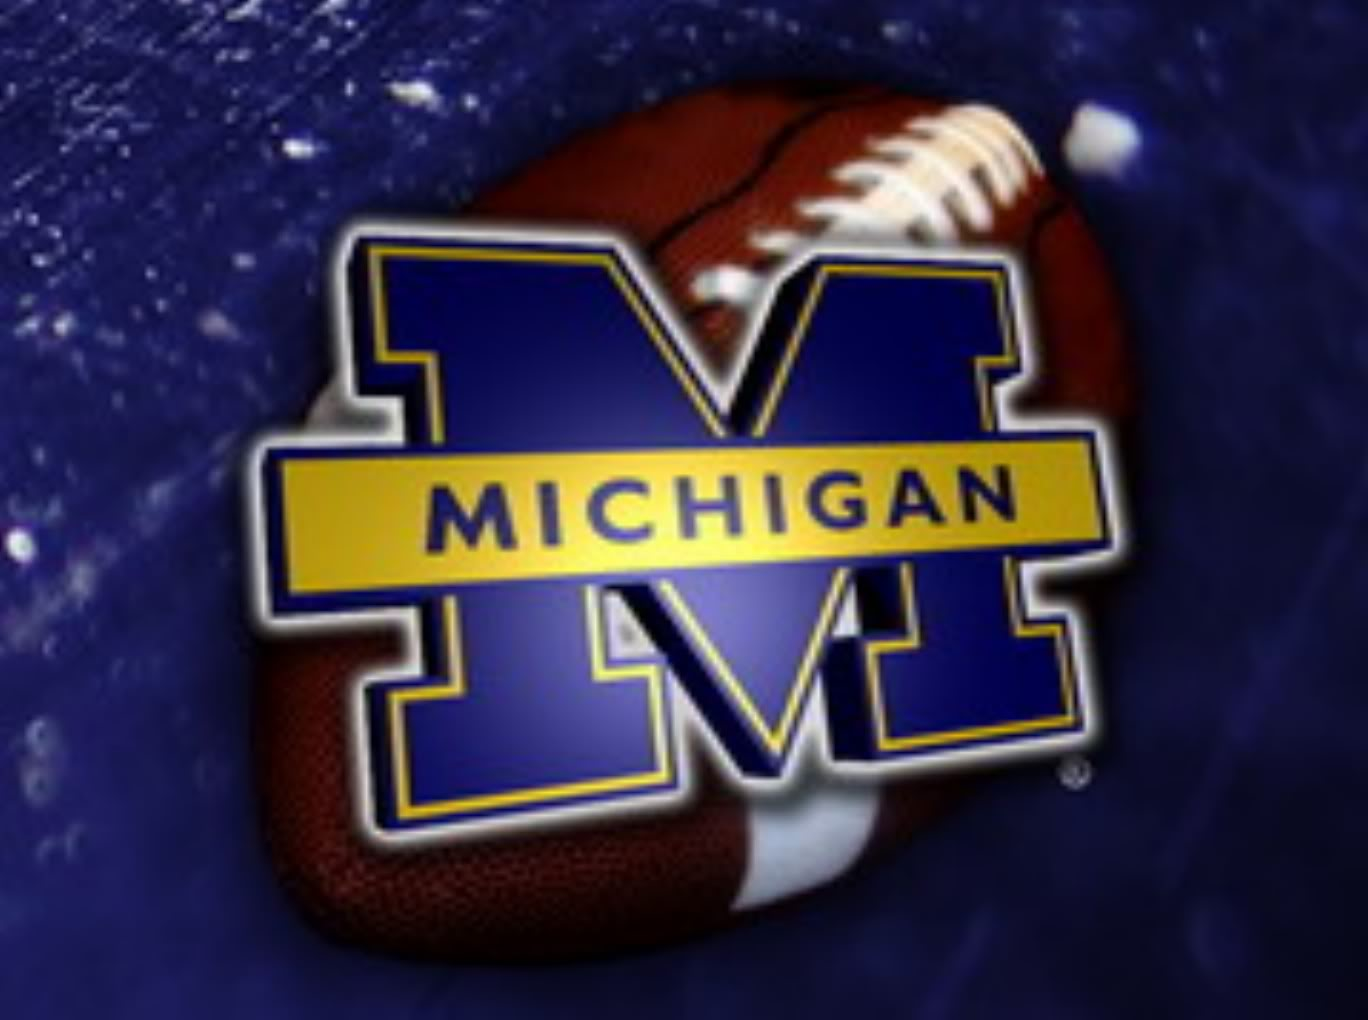 Michigan Football Desktop Wallpaper Download HD Wallpapers 1368x1020